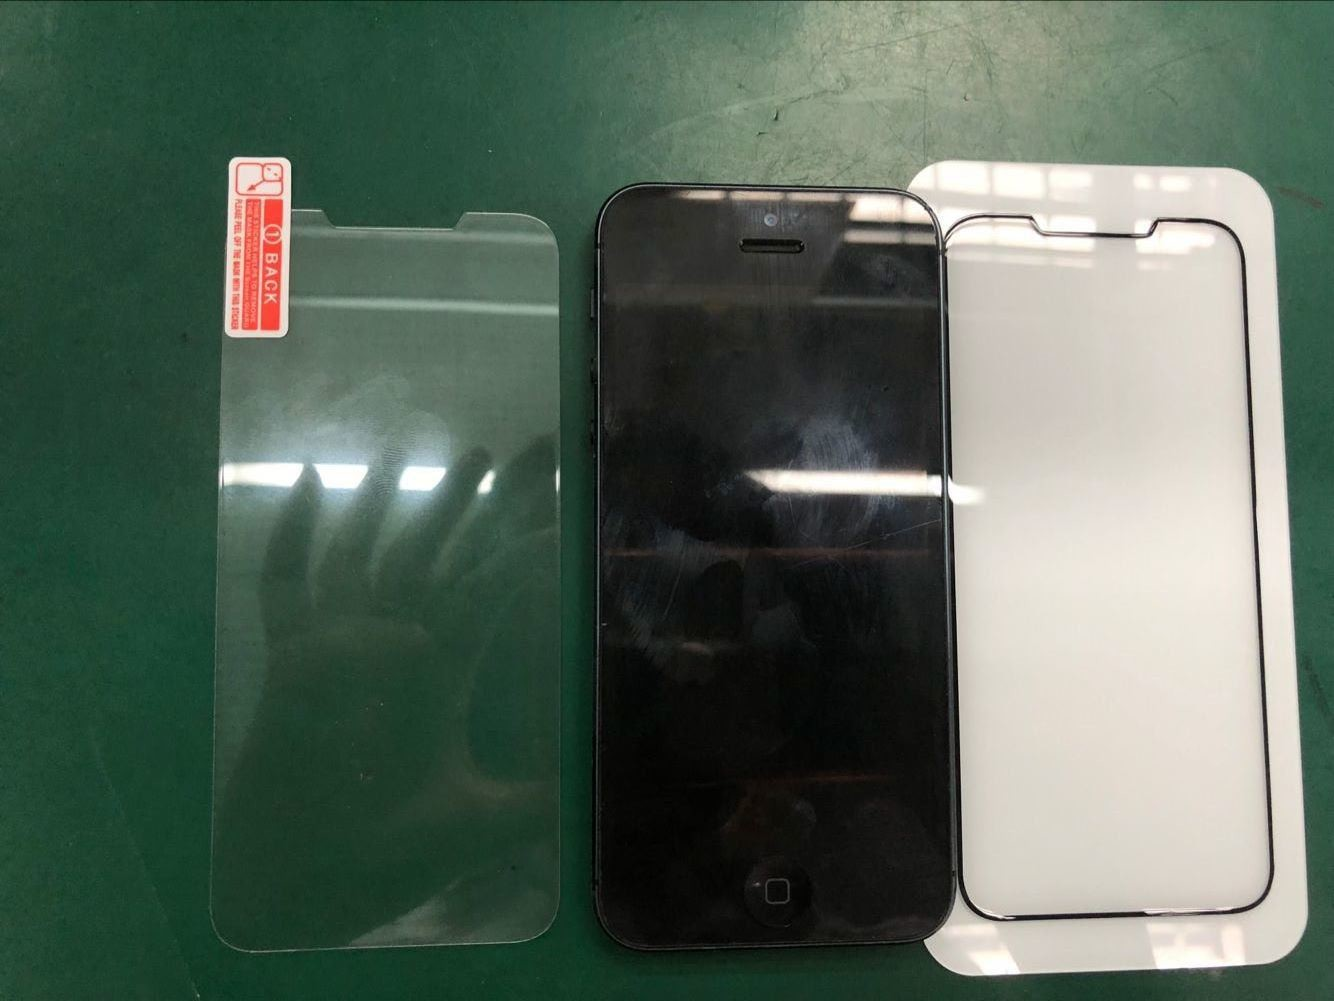 Comparison of the tempered glass protector with an iPhone SE.